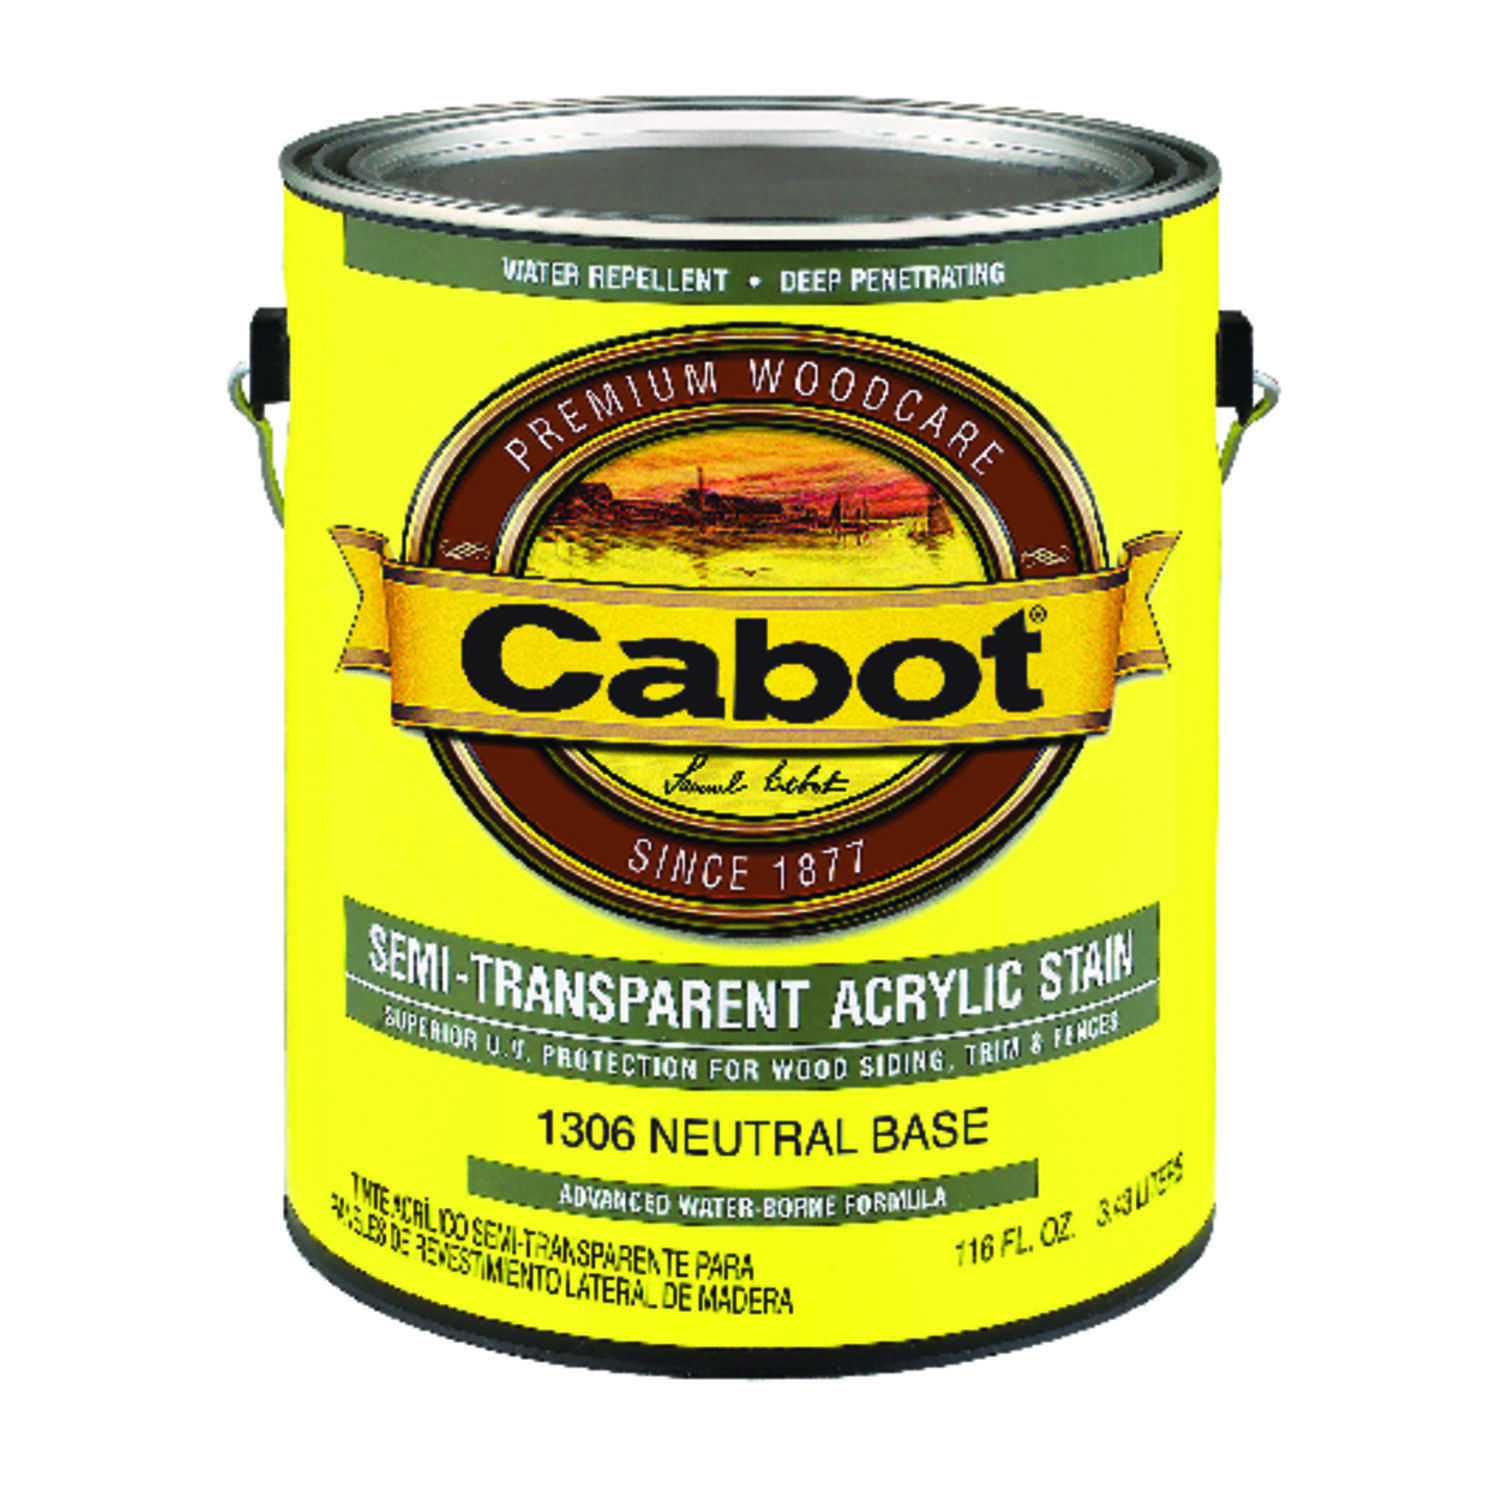 Cabot  Semi-Transparent  1306 Neutral Base  Water-Based  Acrylic  Stain  1 gal.